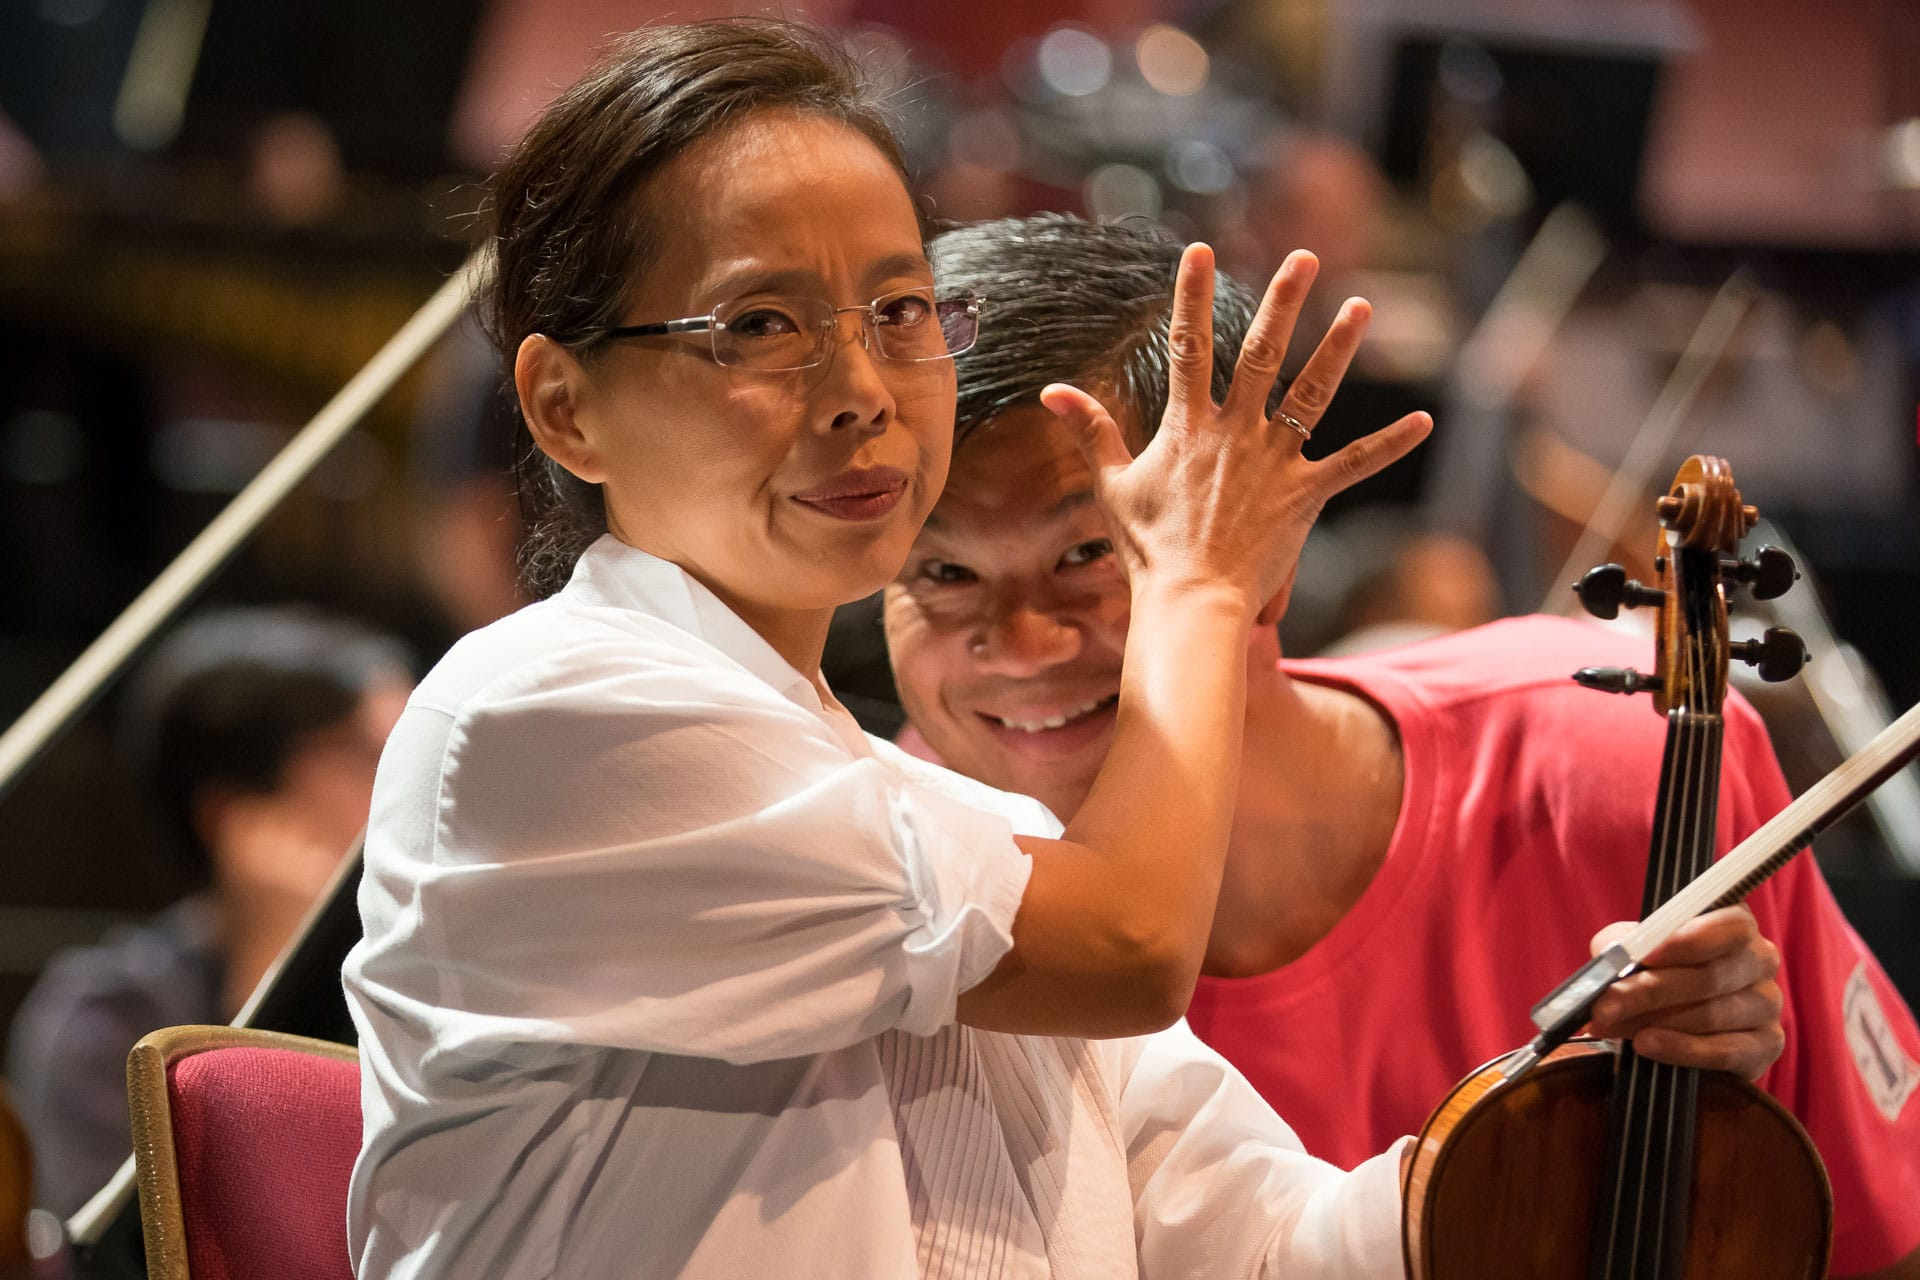 Susanne Park and Christopher Wu, 9/4/17 Pittsburgh Symphony Orchestra 2017 European Tour. Rehearsal at Royal Albert Hall ©Todd Rosenberg 2017